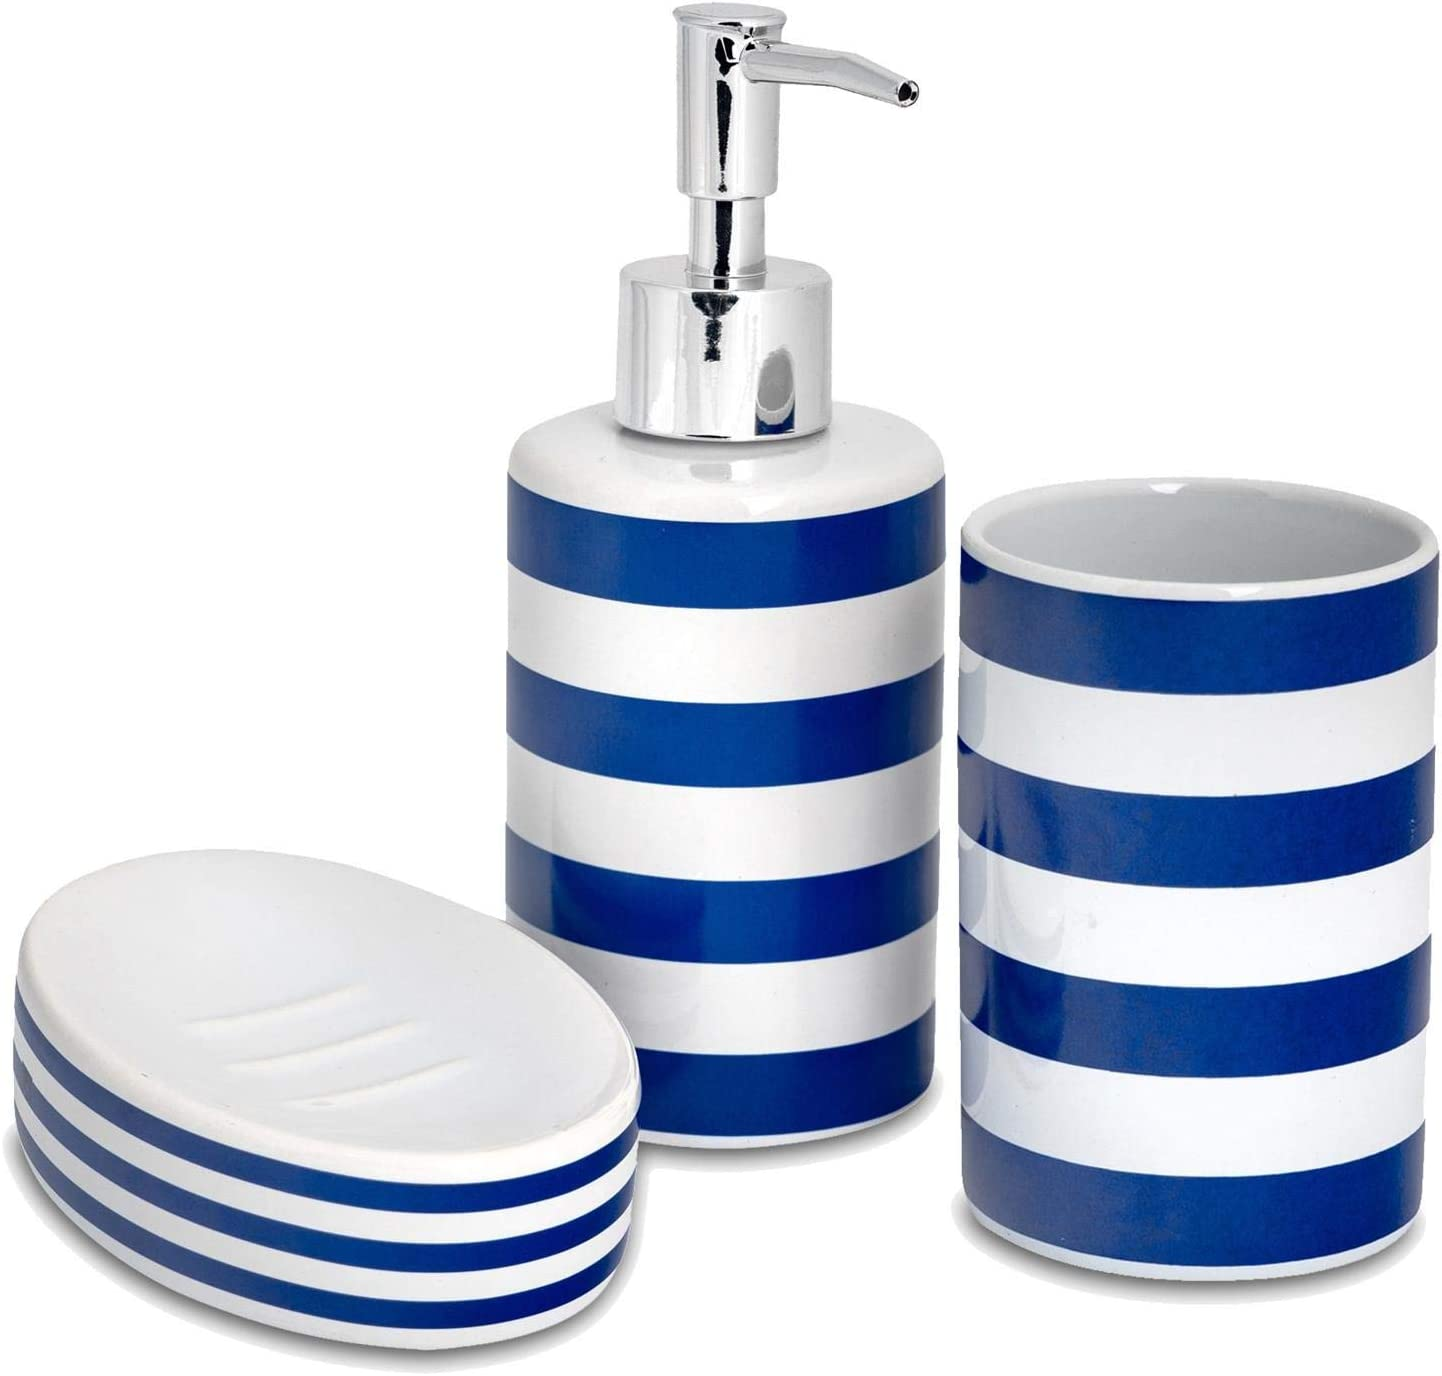 Harbour Housewares 3 Piece Bathroom Accessories Set Soap Dispenser Dish And Toothbrush Holder Navy Stripe Amazon Co Uk Kitchen Home